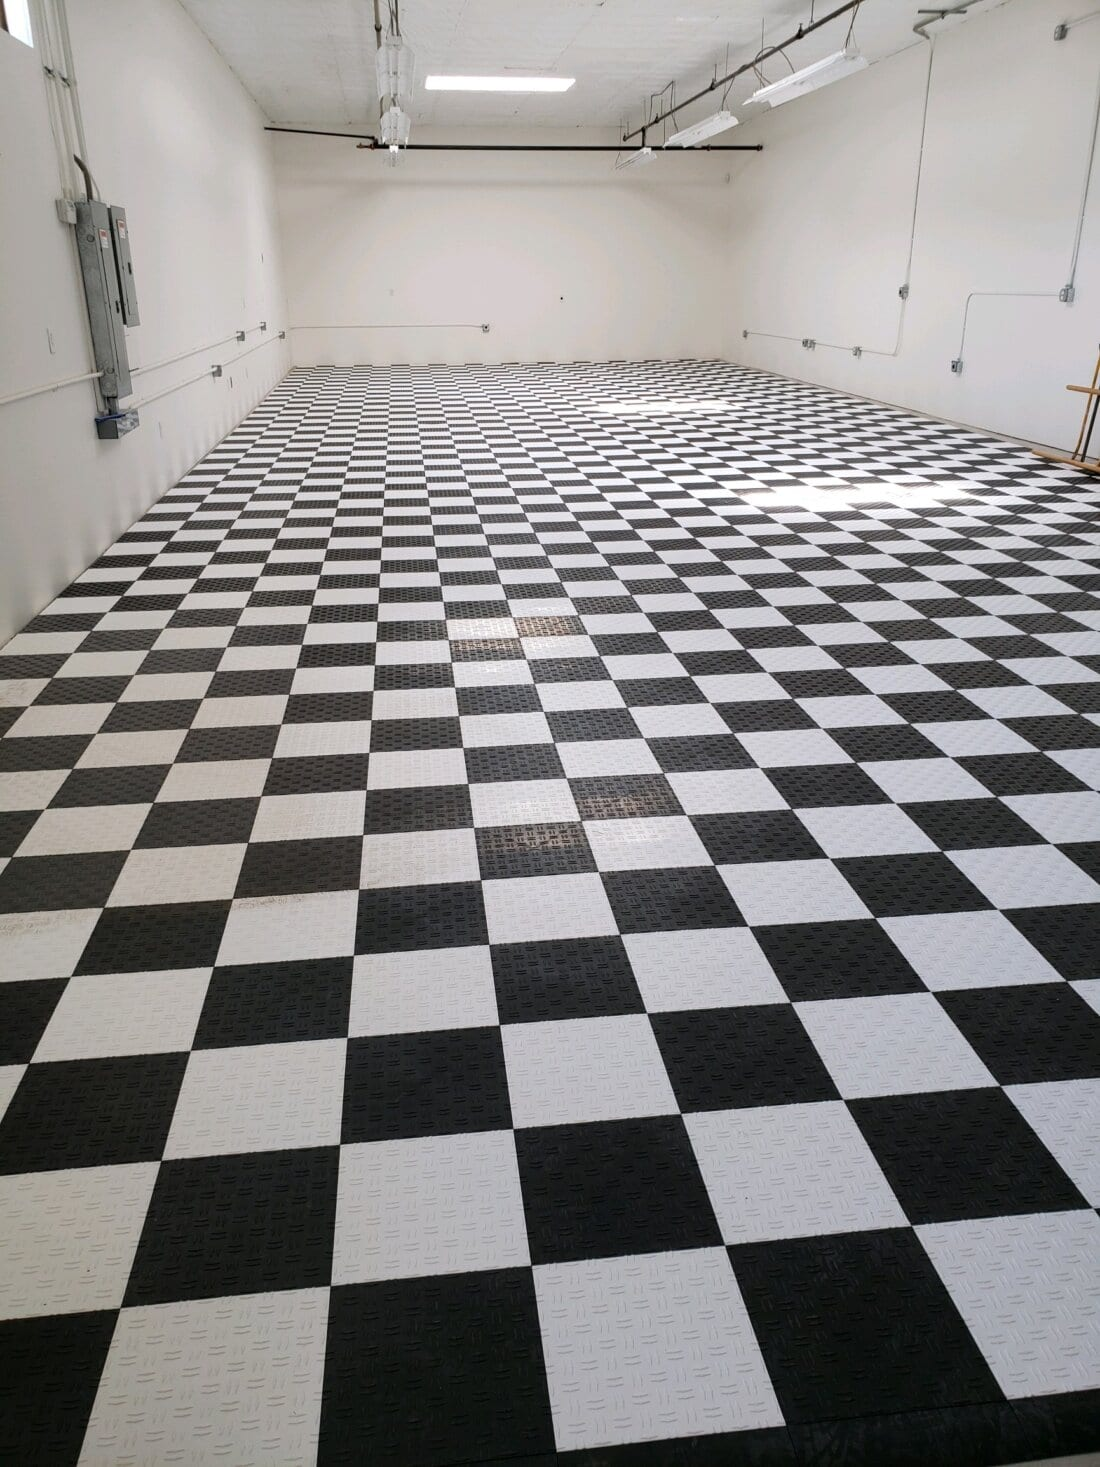 Checkerboard Diamond Pattern Tiles